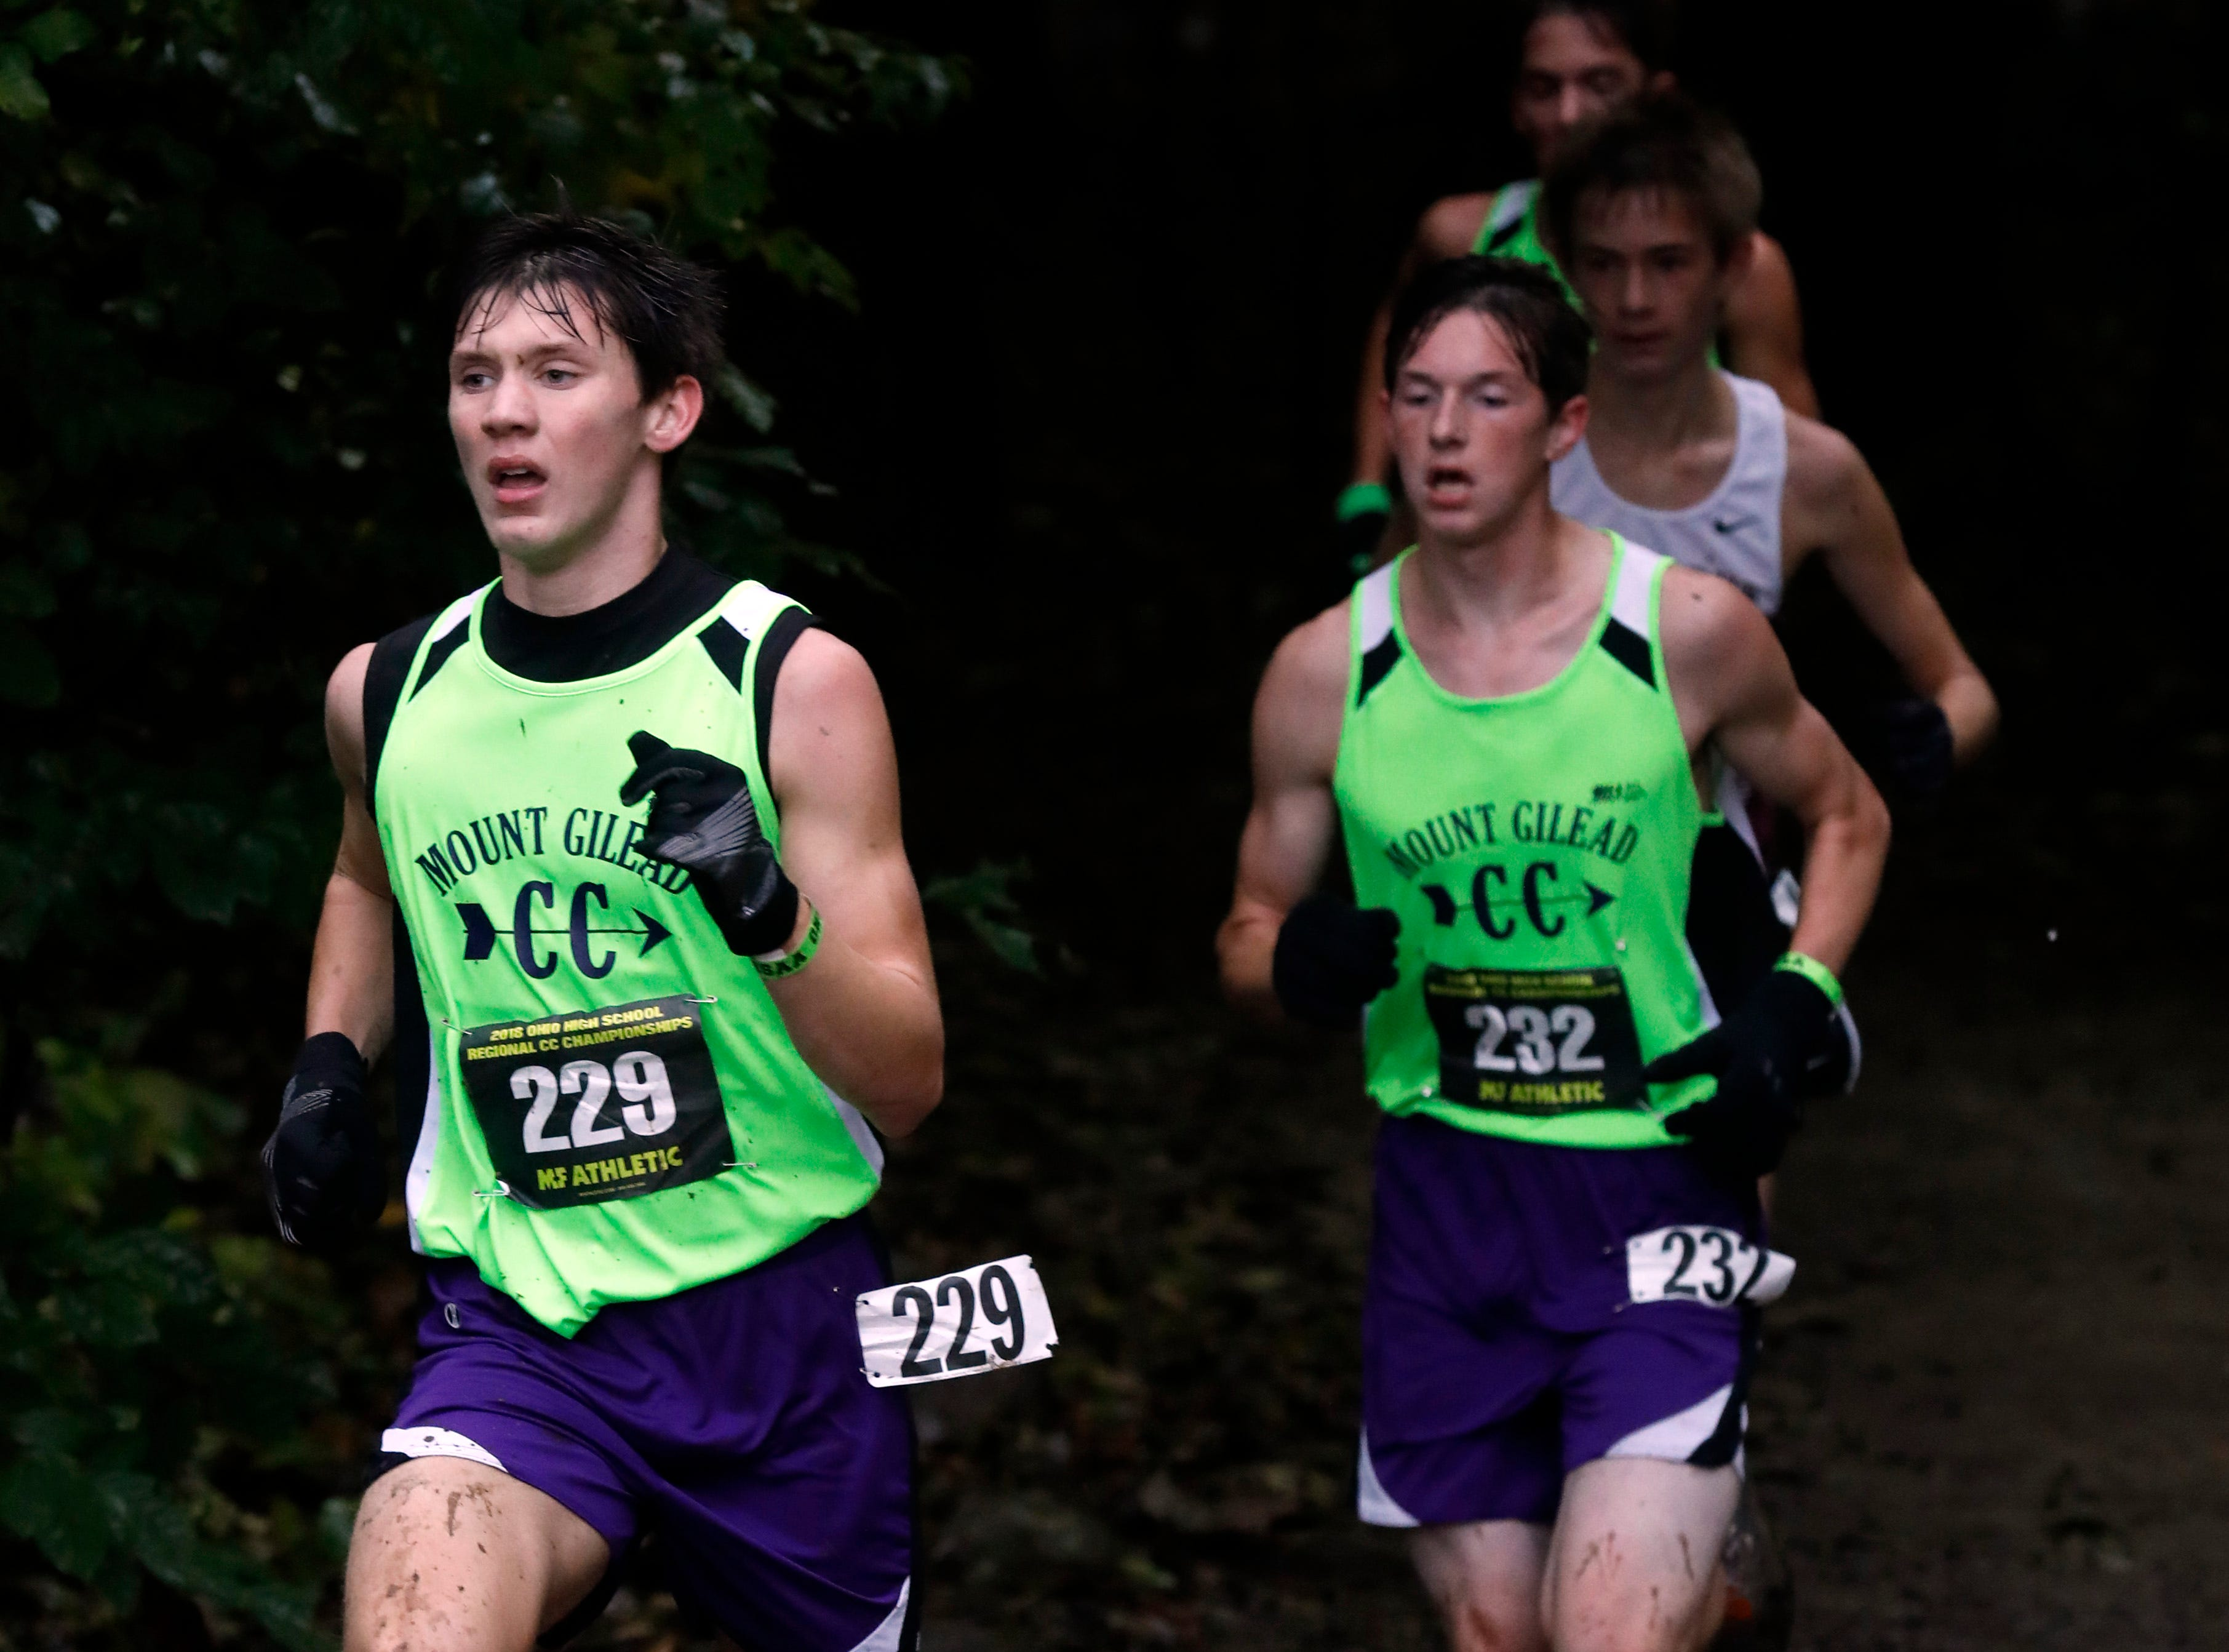 Mount Gilead's Liam Dennis, left, and Ethan Supplee run in the Regional Cross Country meet Saturday, Oct. 27, 2018, at Pickerington North High School in Pickerington.